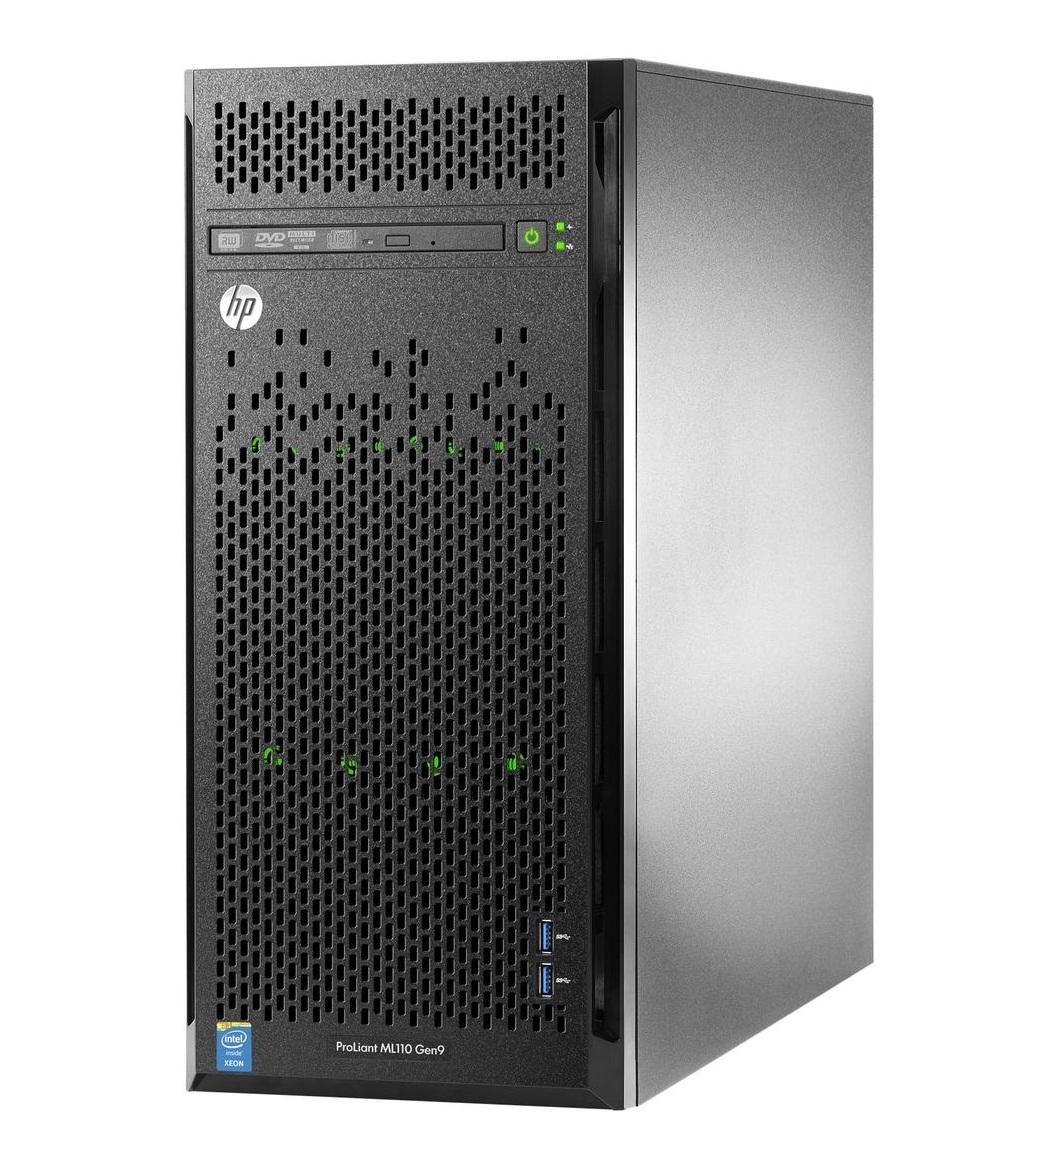 Сервер HP ProLiant ML150 Gen9 NHP Tower(5U)/Xeon6C 1.6GHz(15Mb)/1x4GbR